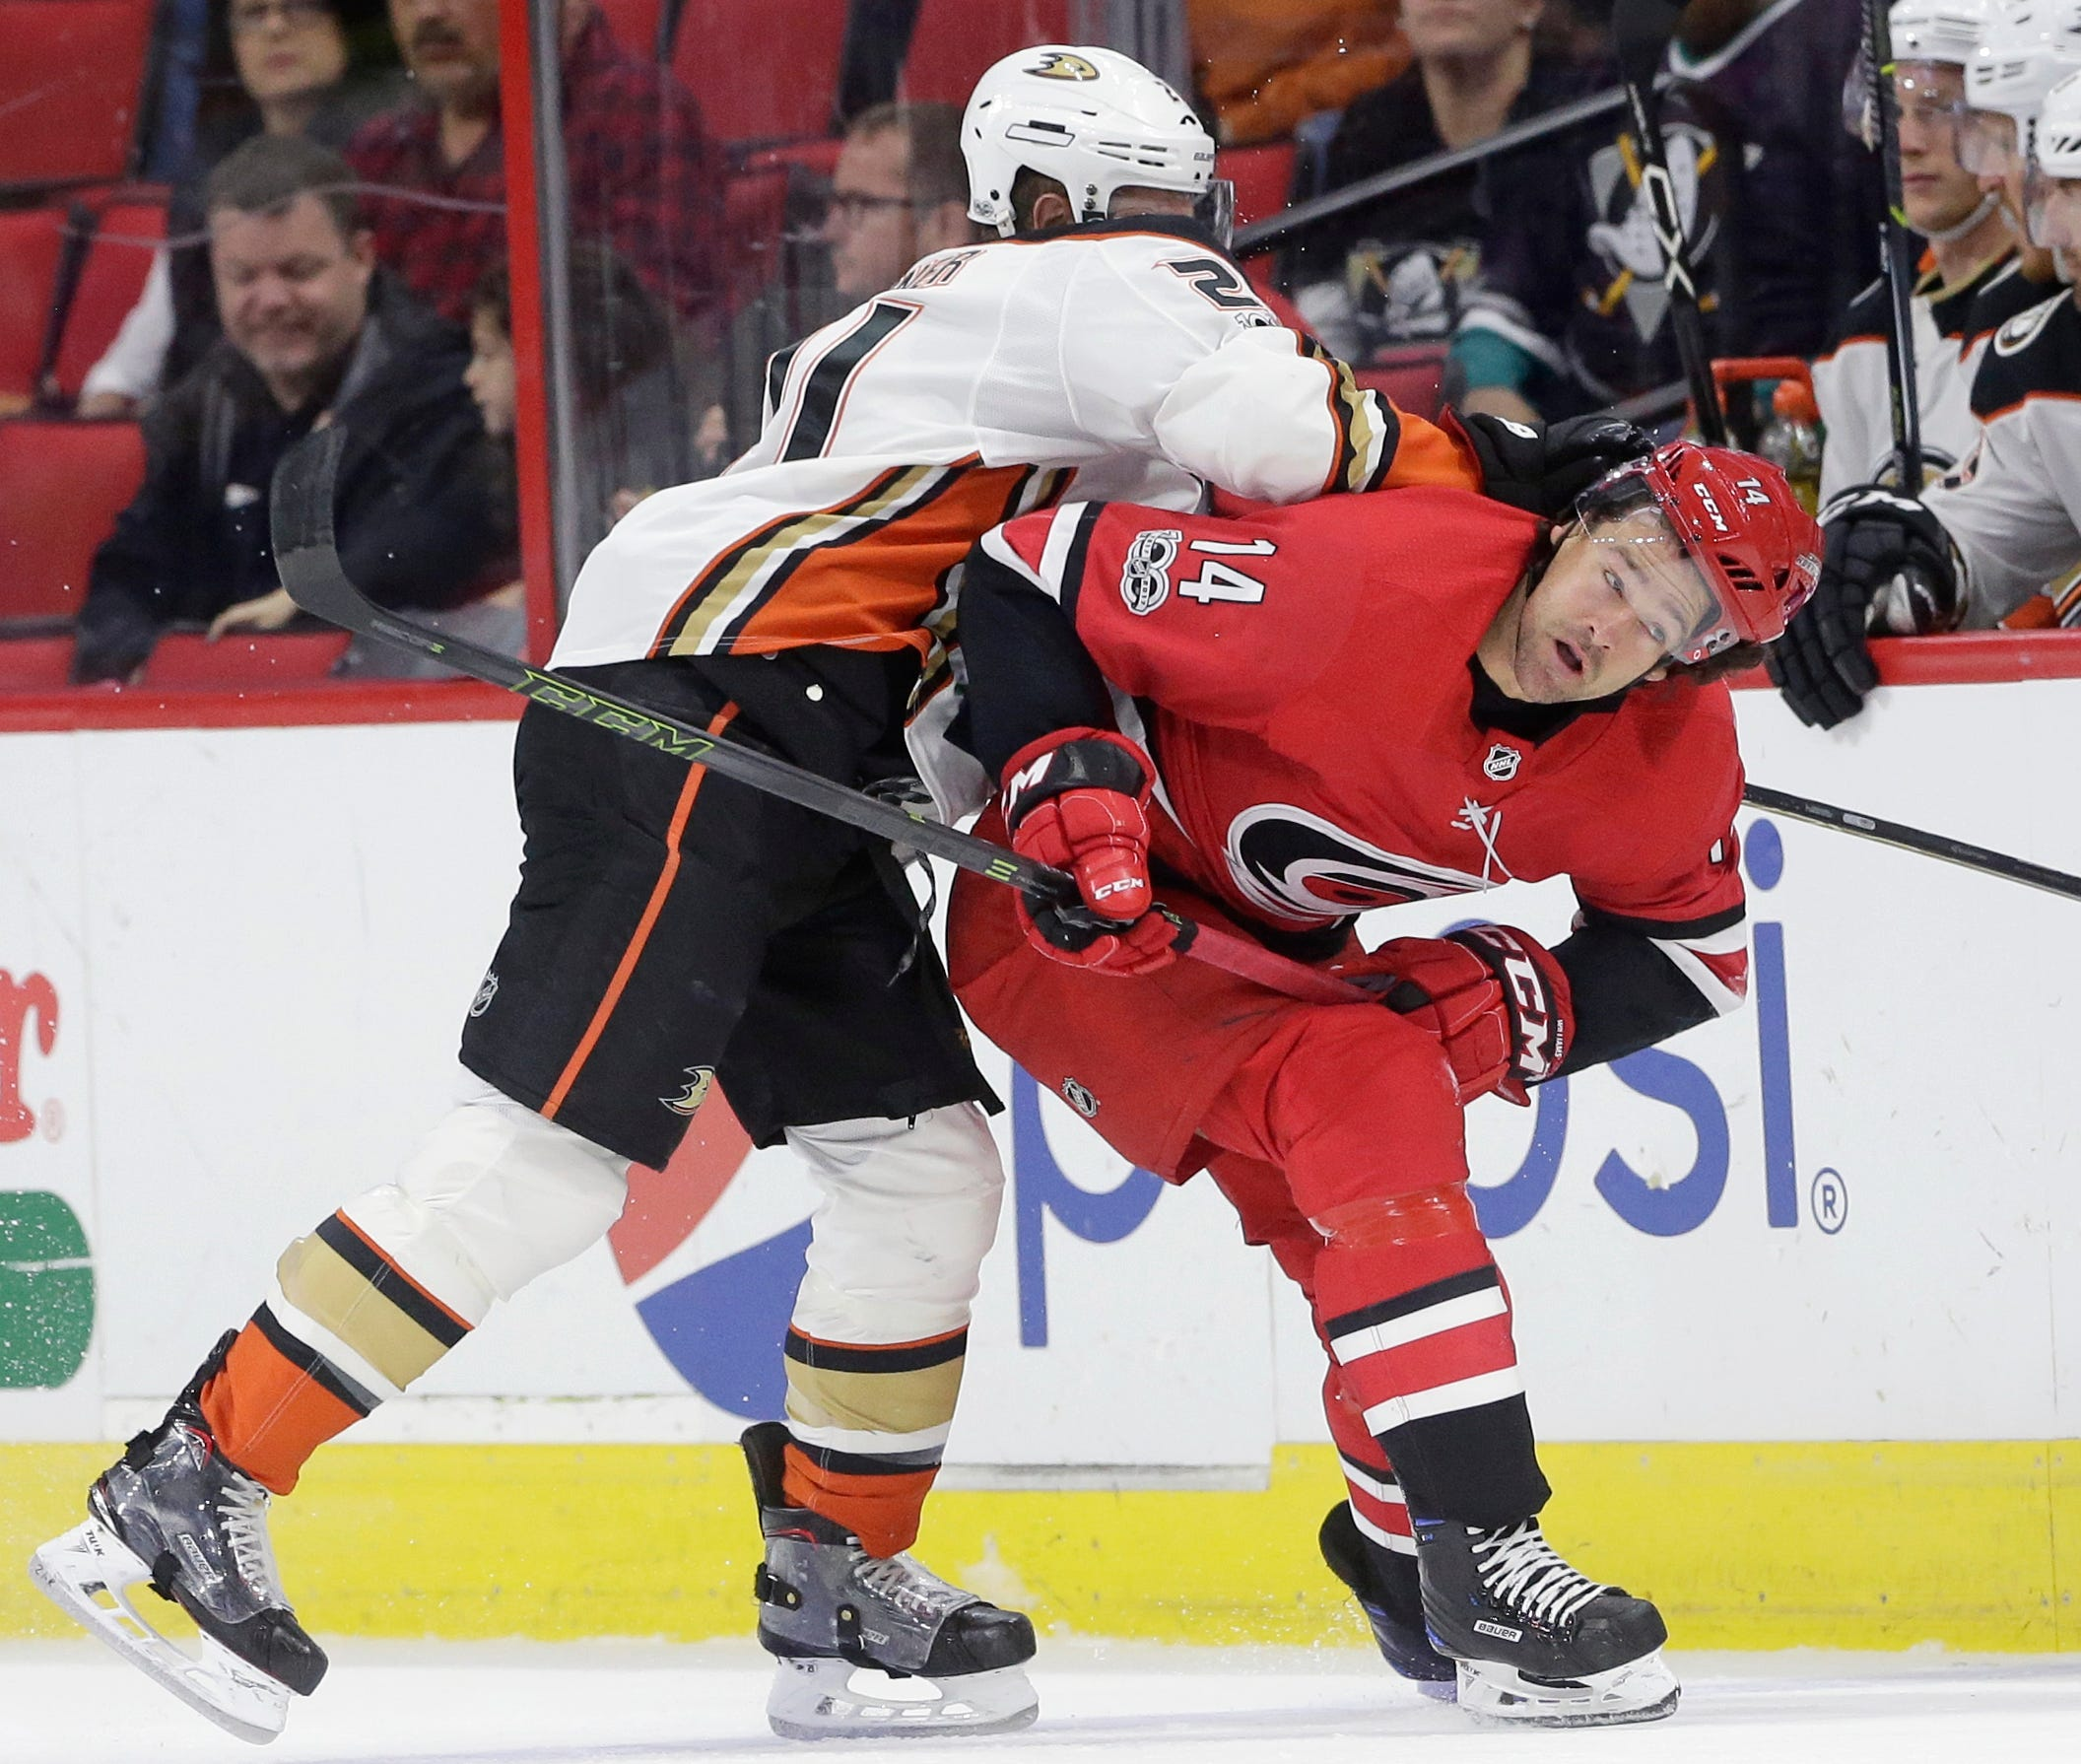 Perry scores in shootout to lift Ducks past Hurricanes